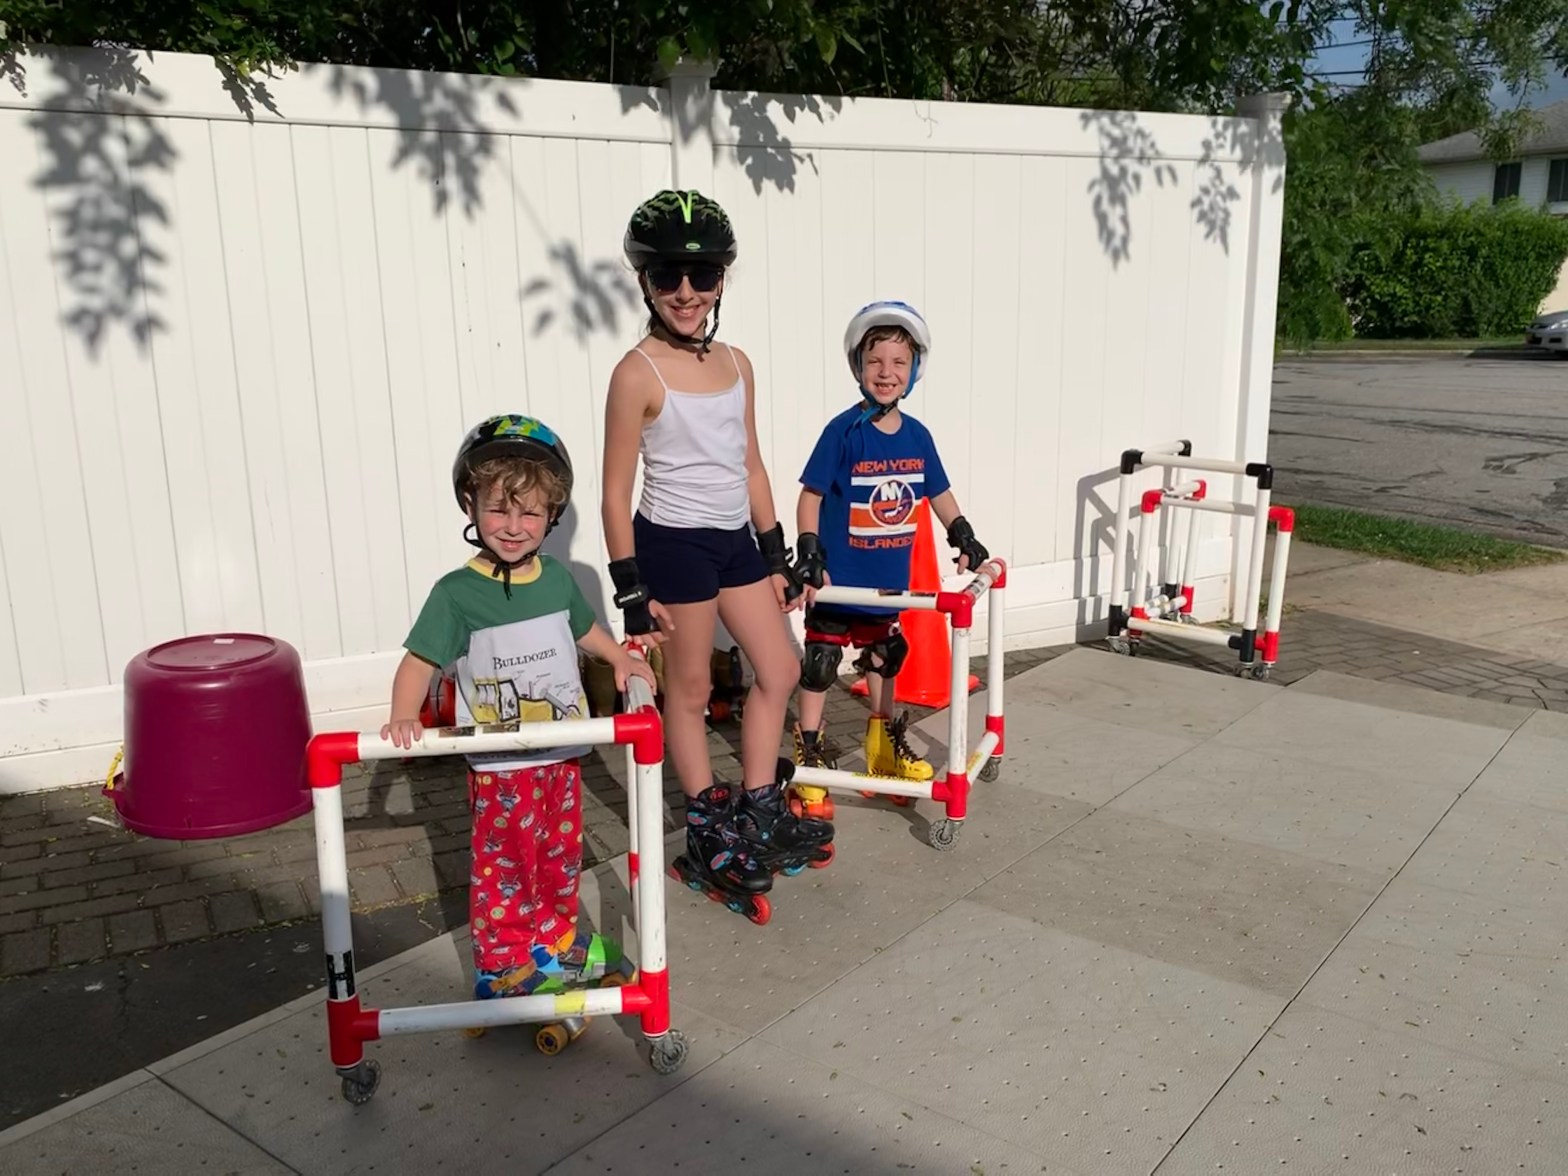 The Mint Chip Mama - Convert Your Driveway Into a Roller Skating Rink!